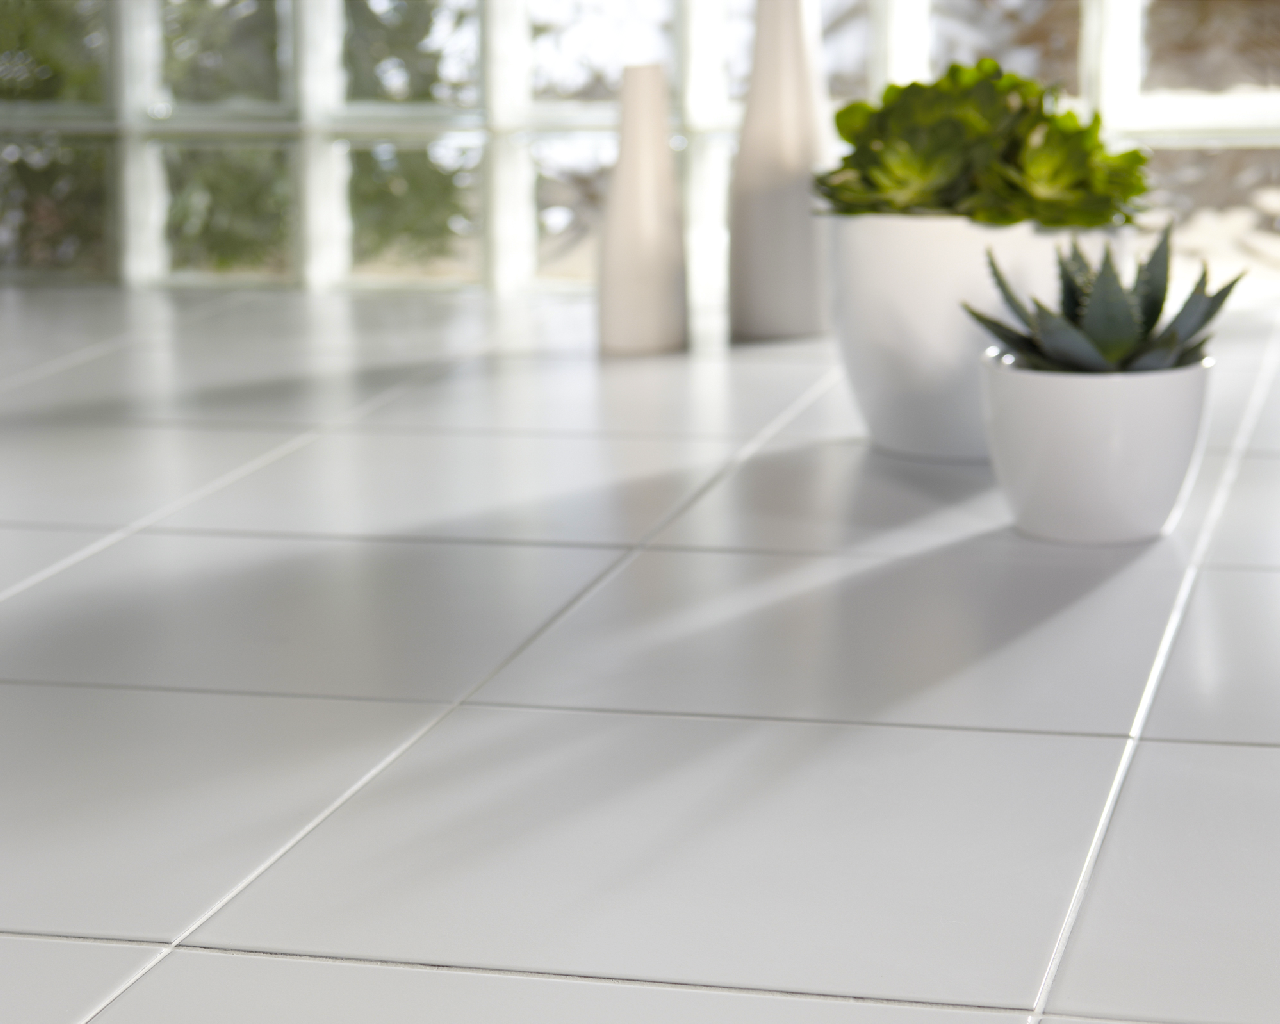 Difference between glazed and unglazed tiles httpbit11tcxeo pure white quartz floor tiles ceramic or porcelain tile flooring is very durable and a great investment in your home dailygadgetfo Gallery